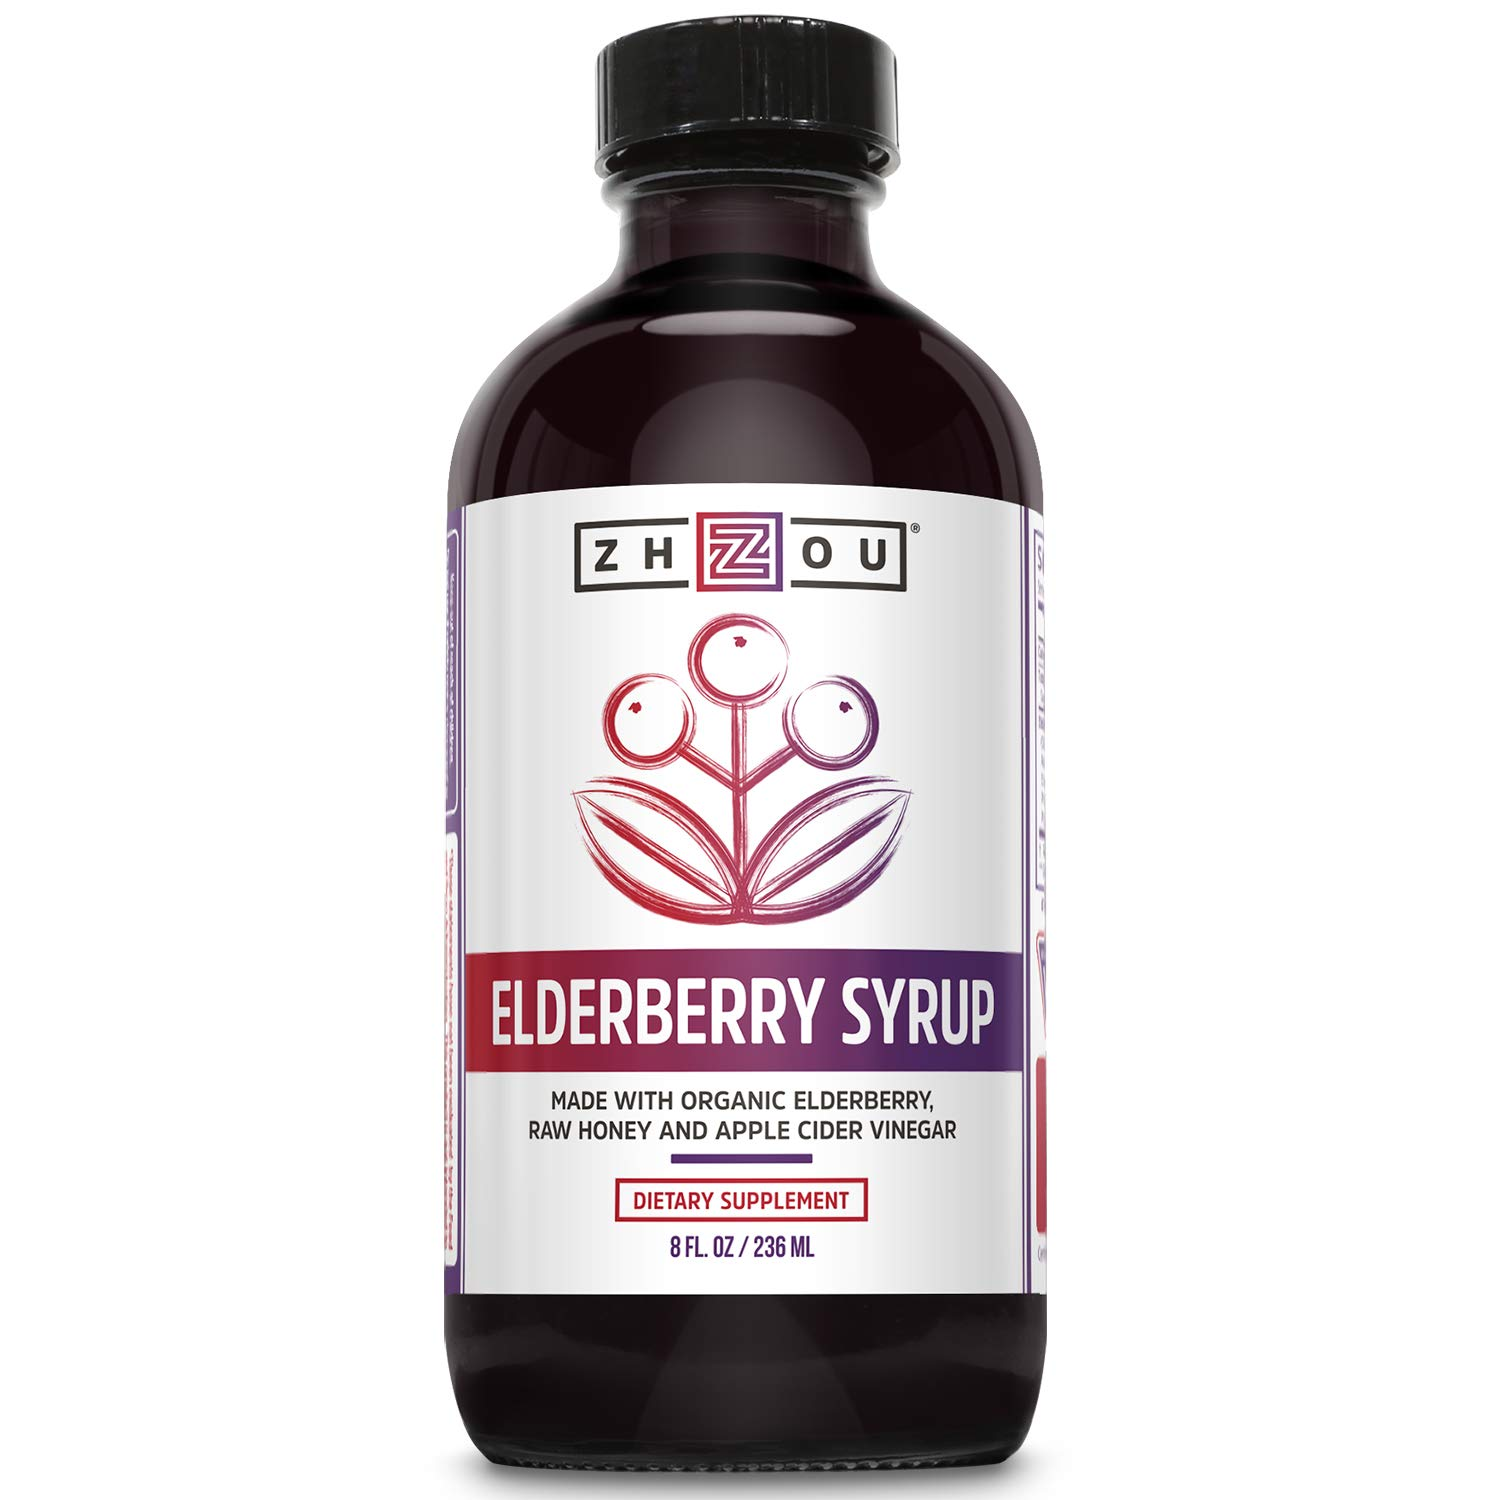 Elderberry Syrup – Organic Sambus Black Elderberry, Raw Honey, Apple Cider Vinegar Propolis – Immune System Booster During Cold Winter Months